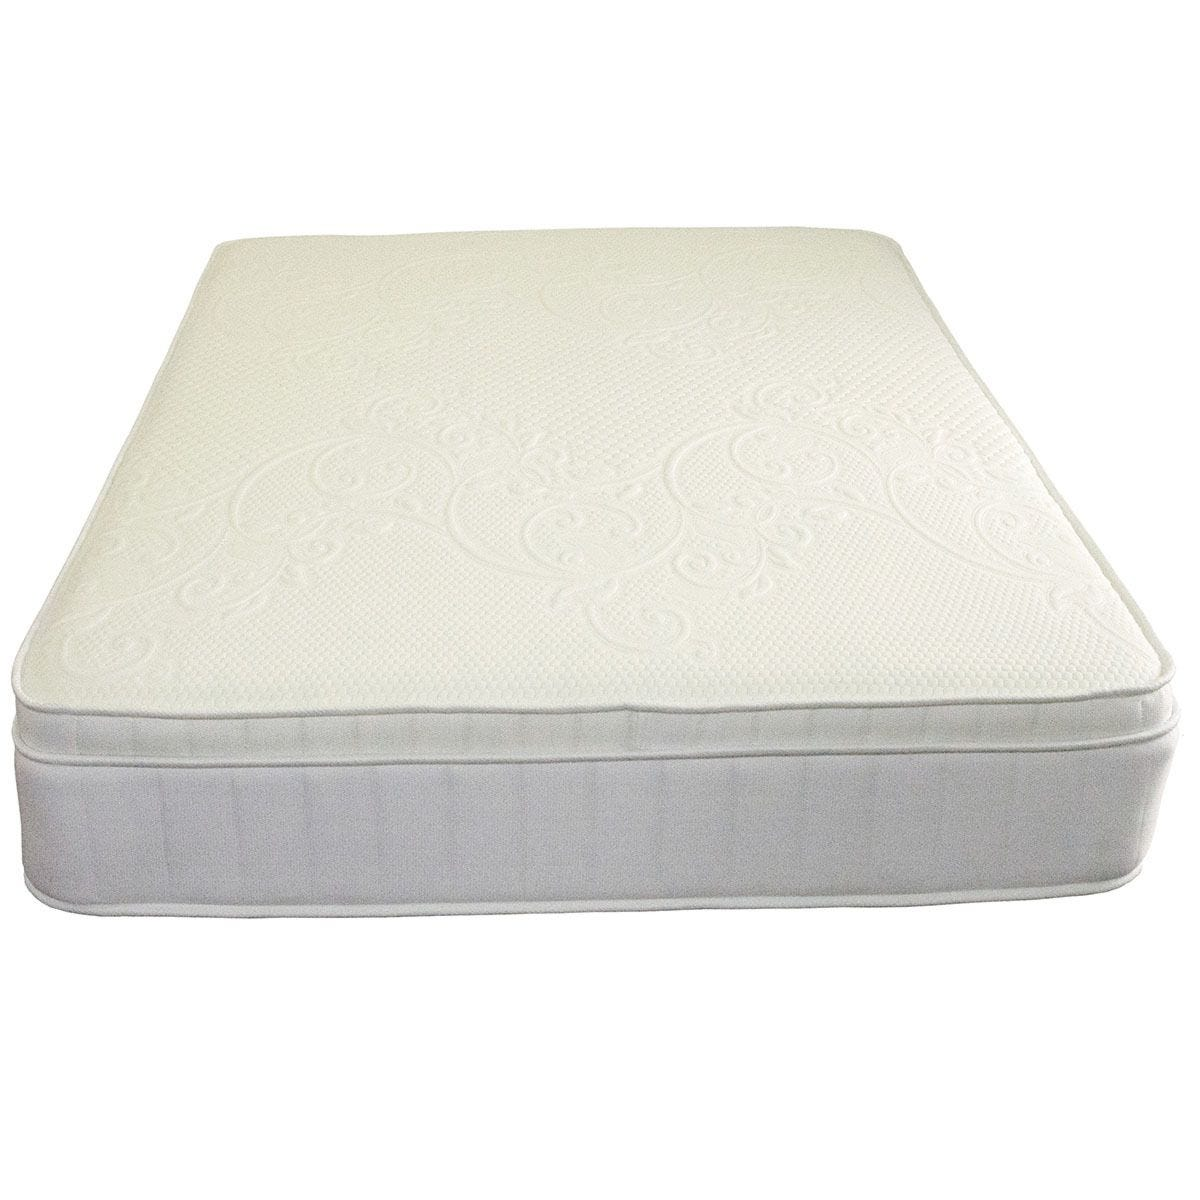 Comfy Deluxe Pillow Top Memory Mattress - White